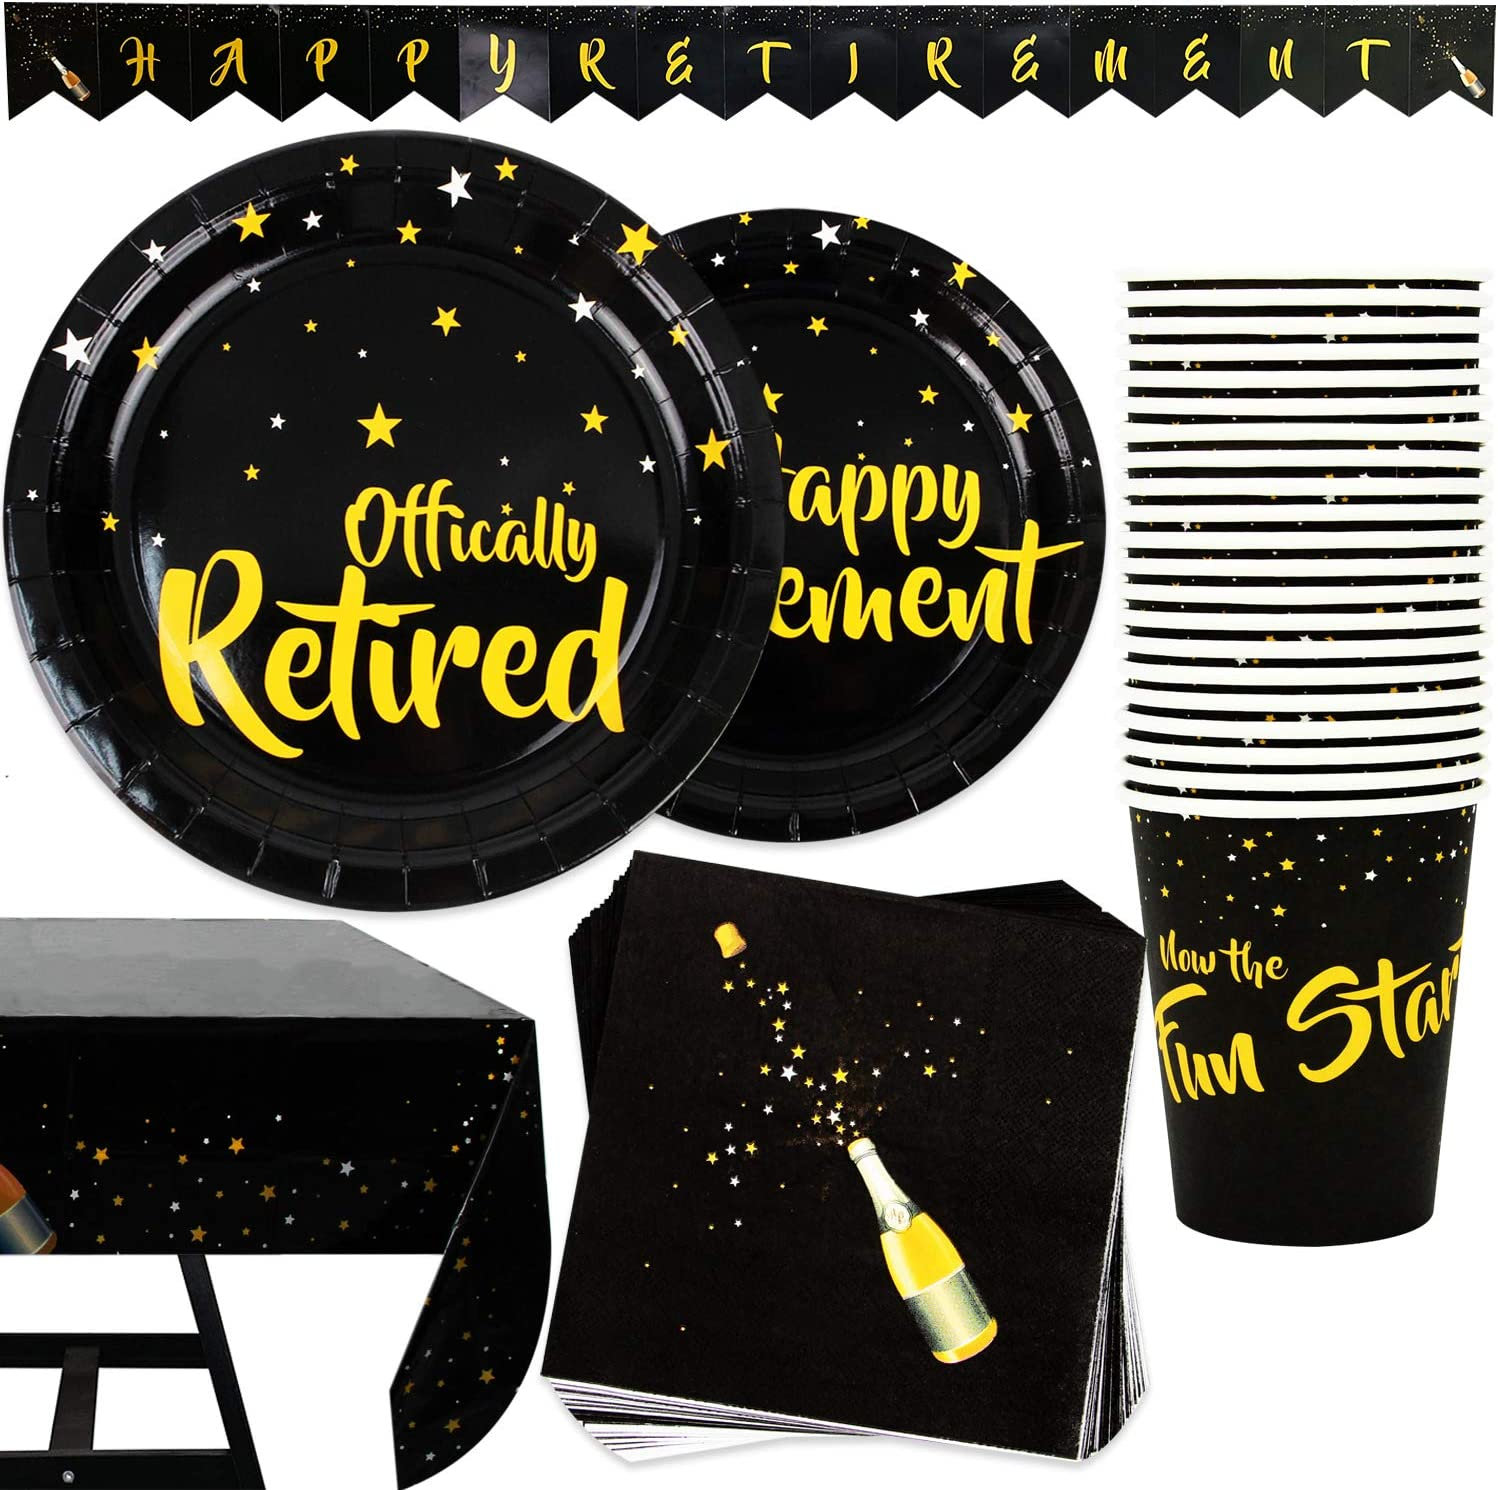 102 Piece Happy Retirement Party Supplies Set Including Plates, Cups, Napkins, Tablecloth and Banner, Serves 25